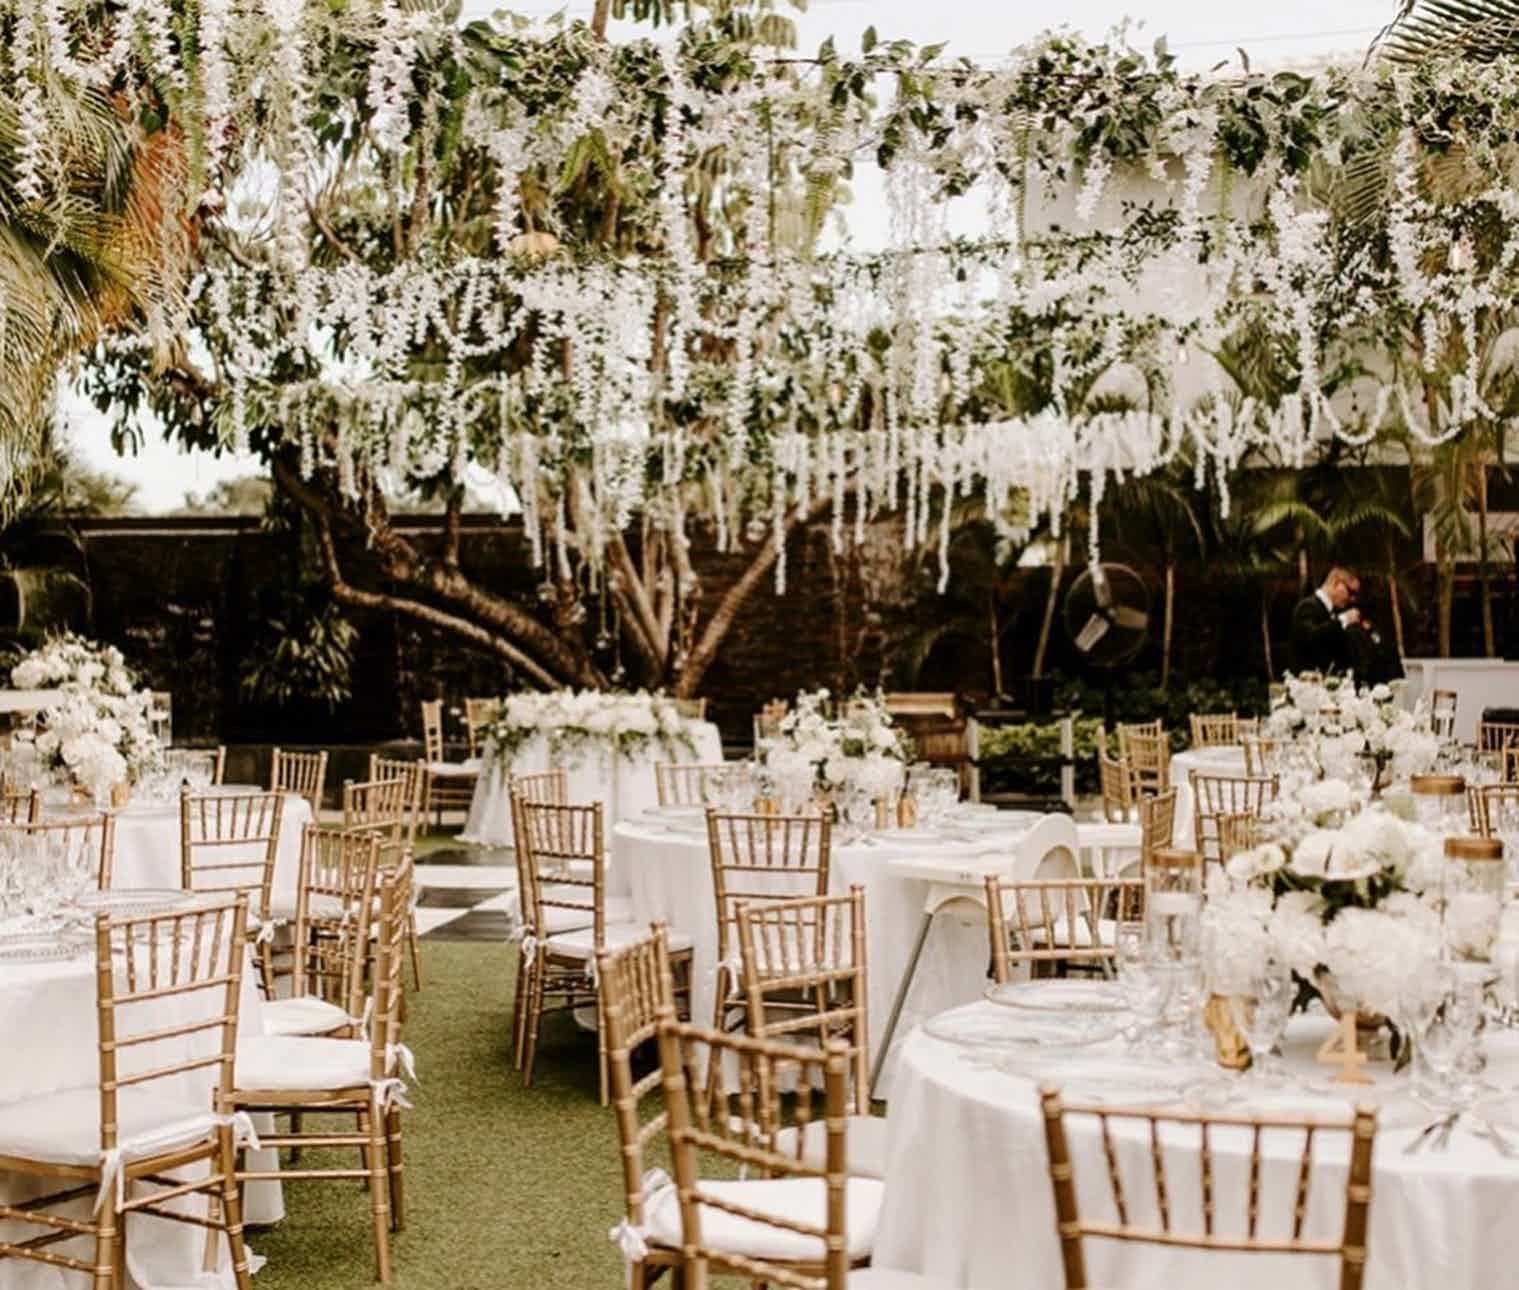 The Club Of Knights Weddings Miami Ft Lauderdale Wedding Venue